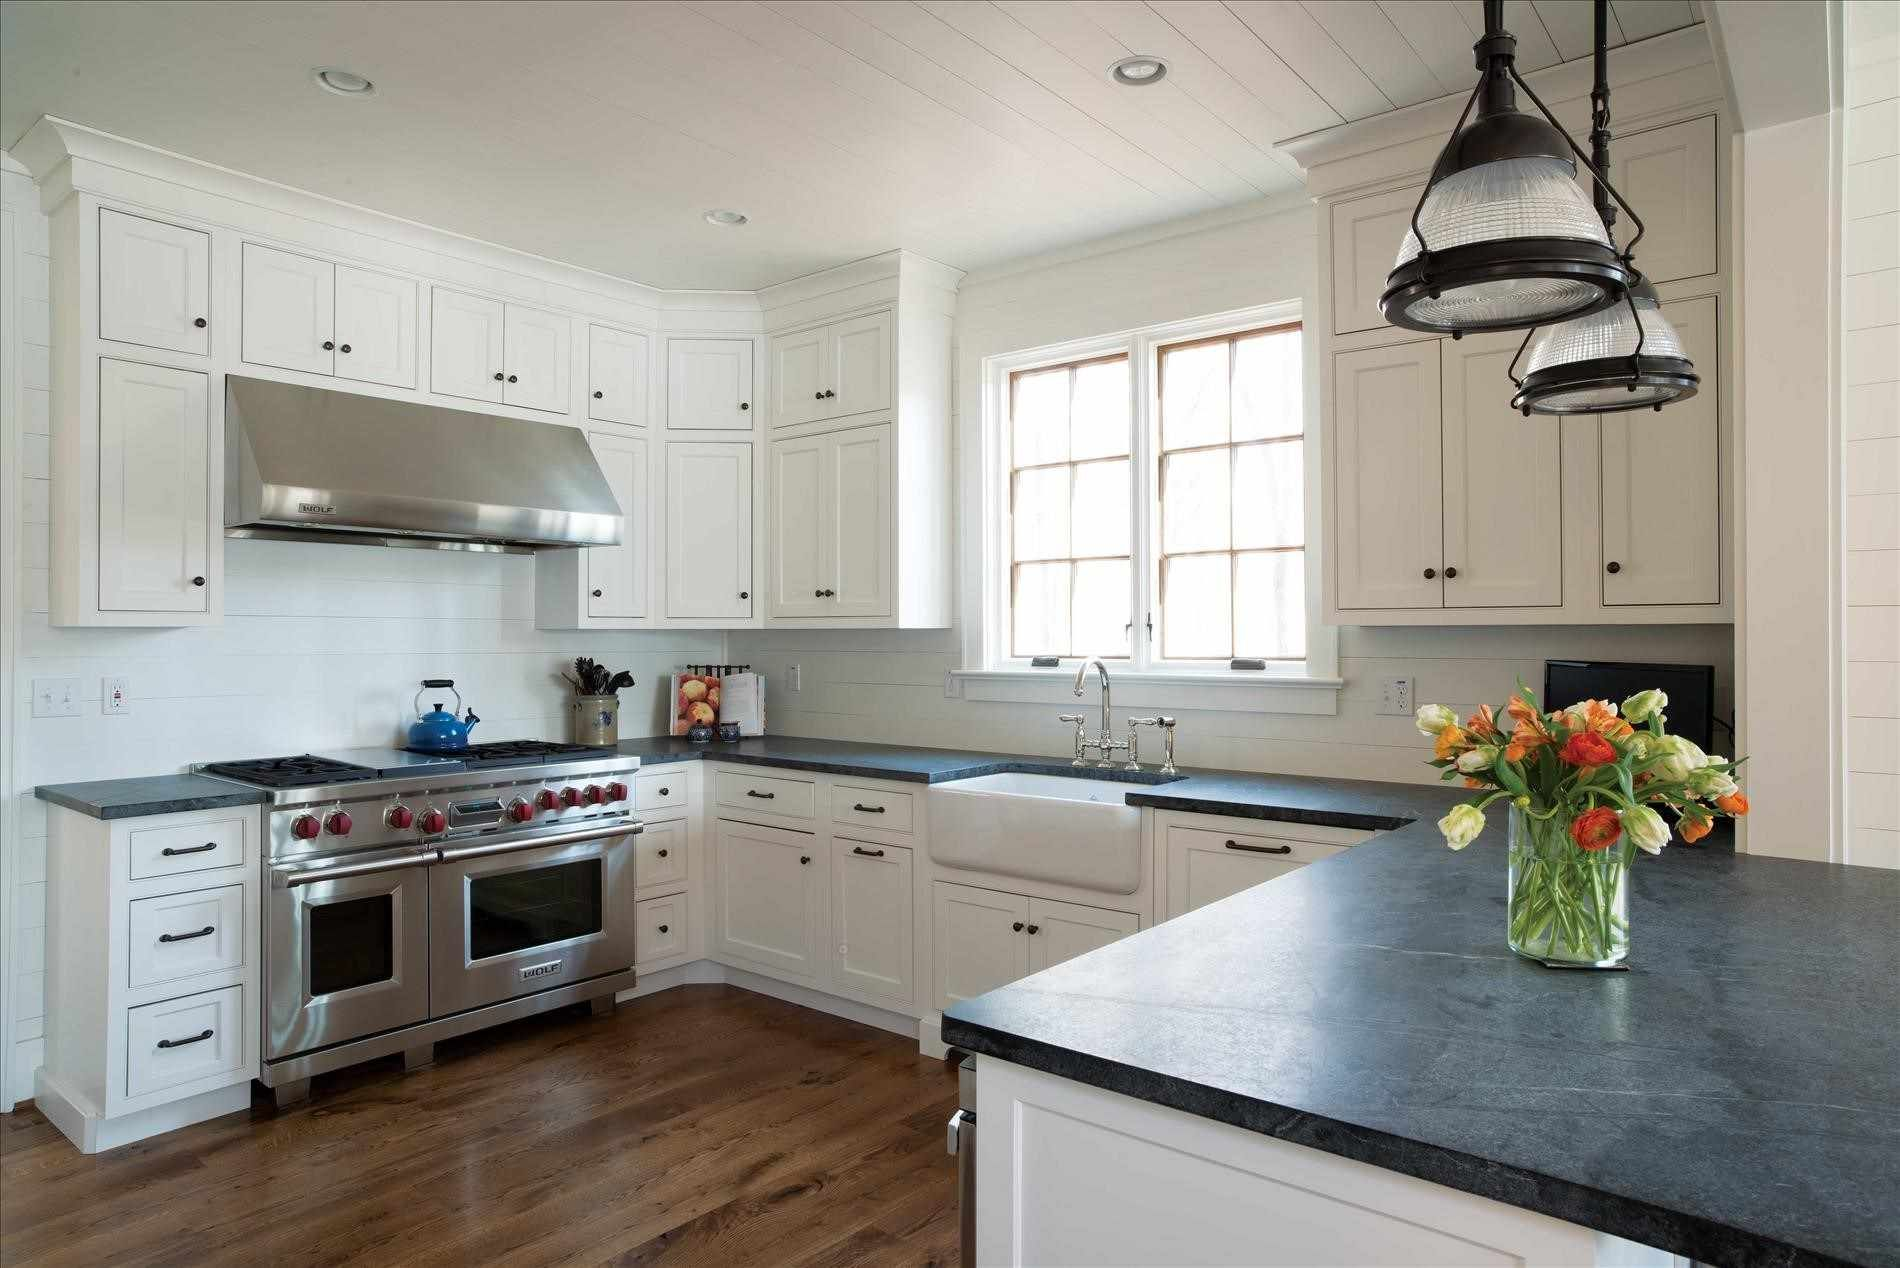 Kitchencharming white kitchen cabinets with soapstone countertops